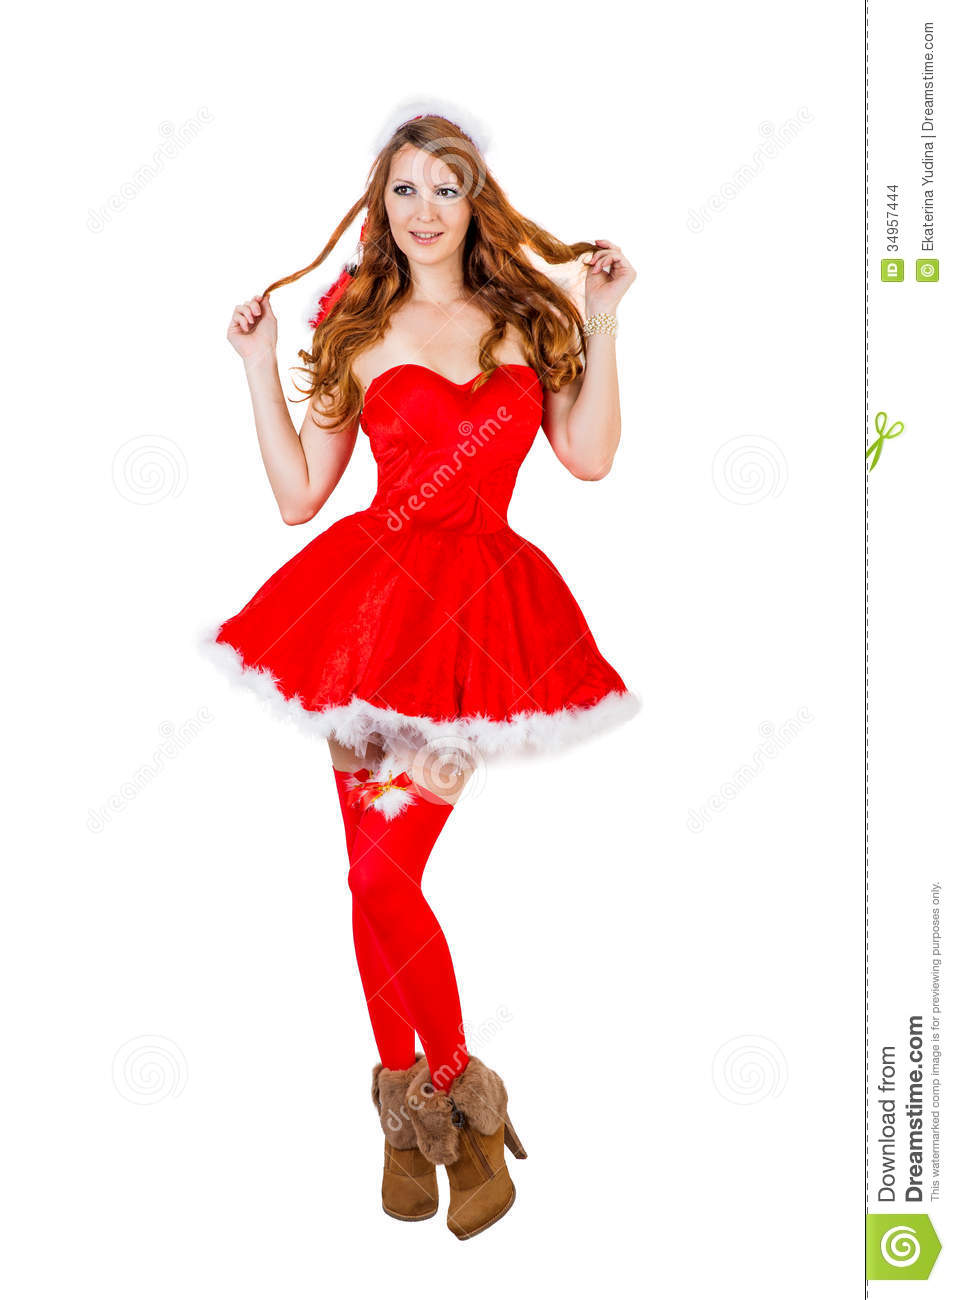 Christmas woman wearing red santa claus clothes and red stockings